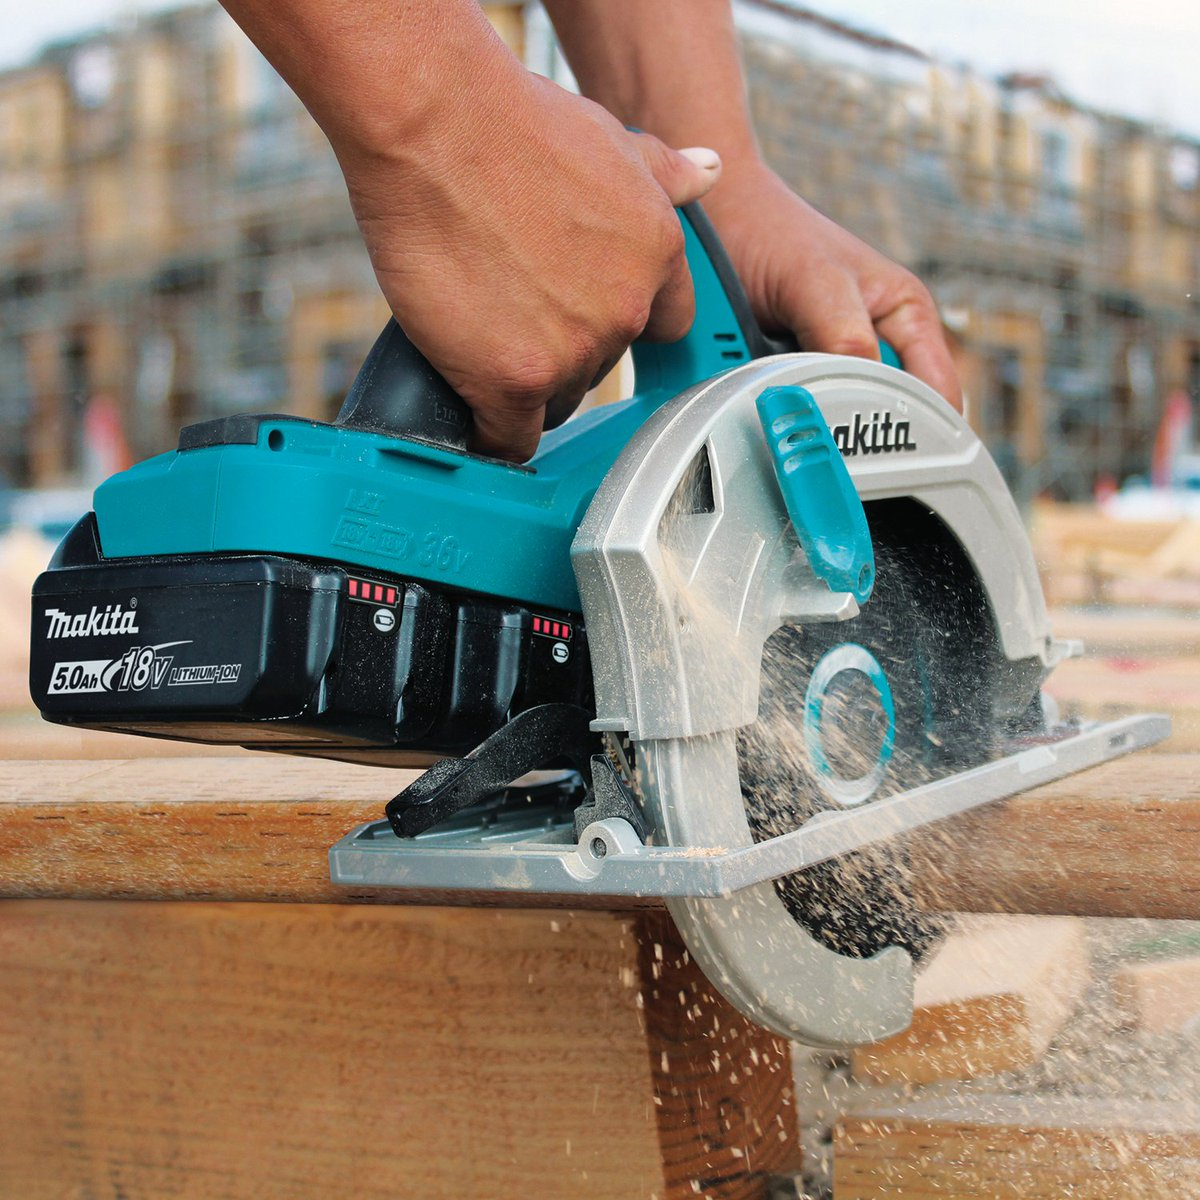 """The 18V X2 (36V) LXT Cordless 7-1/4"""" Circular Saw (XSH01) provides the performance of a corded saw with cordless convenience. The Makita-built motor delivers 4,800 RPM for fast cutting.   #xsh01 #circularsaw #makitausa #powertools"""